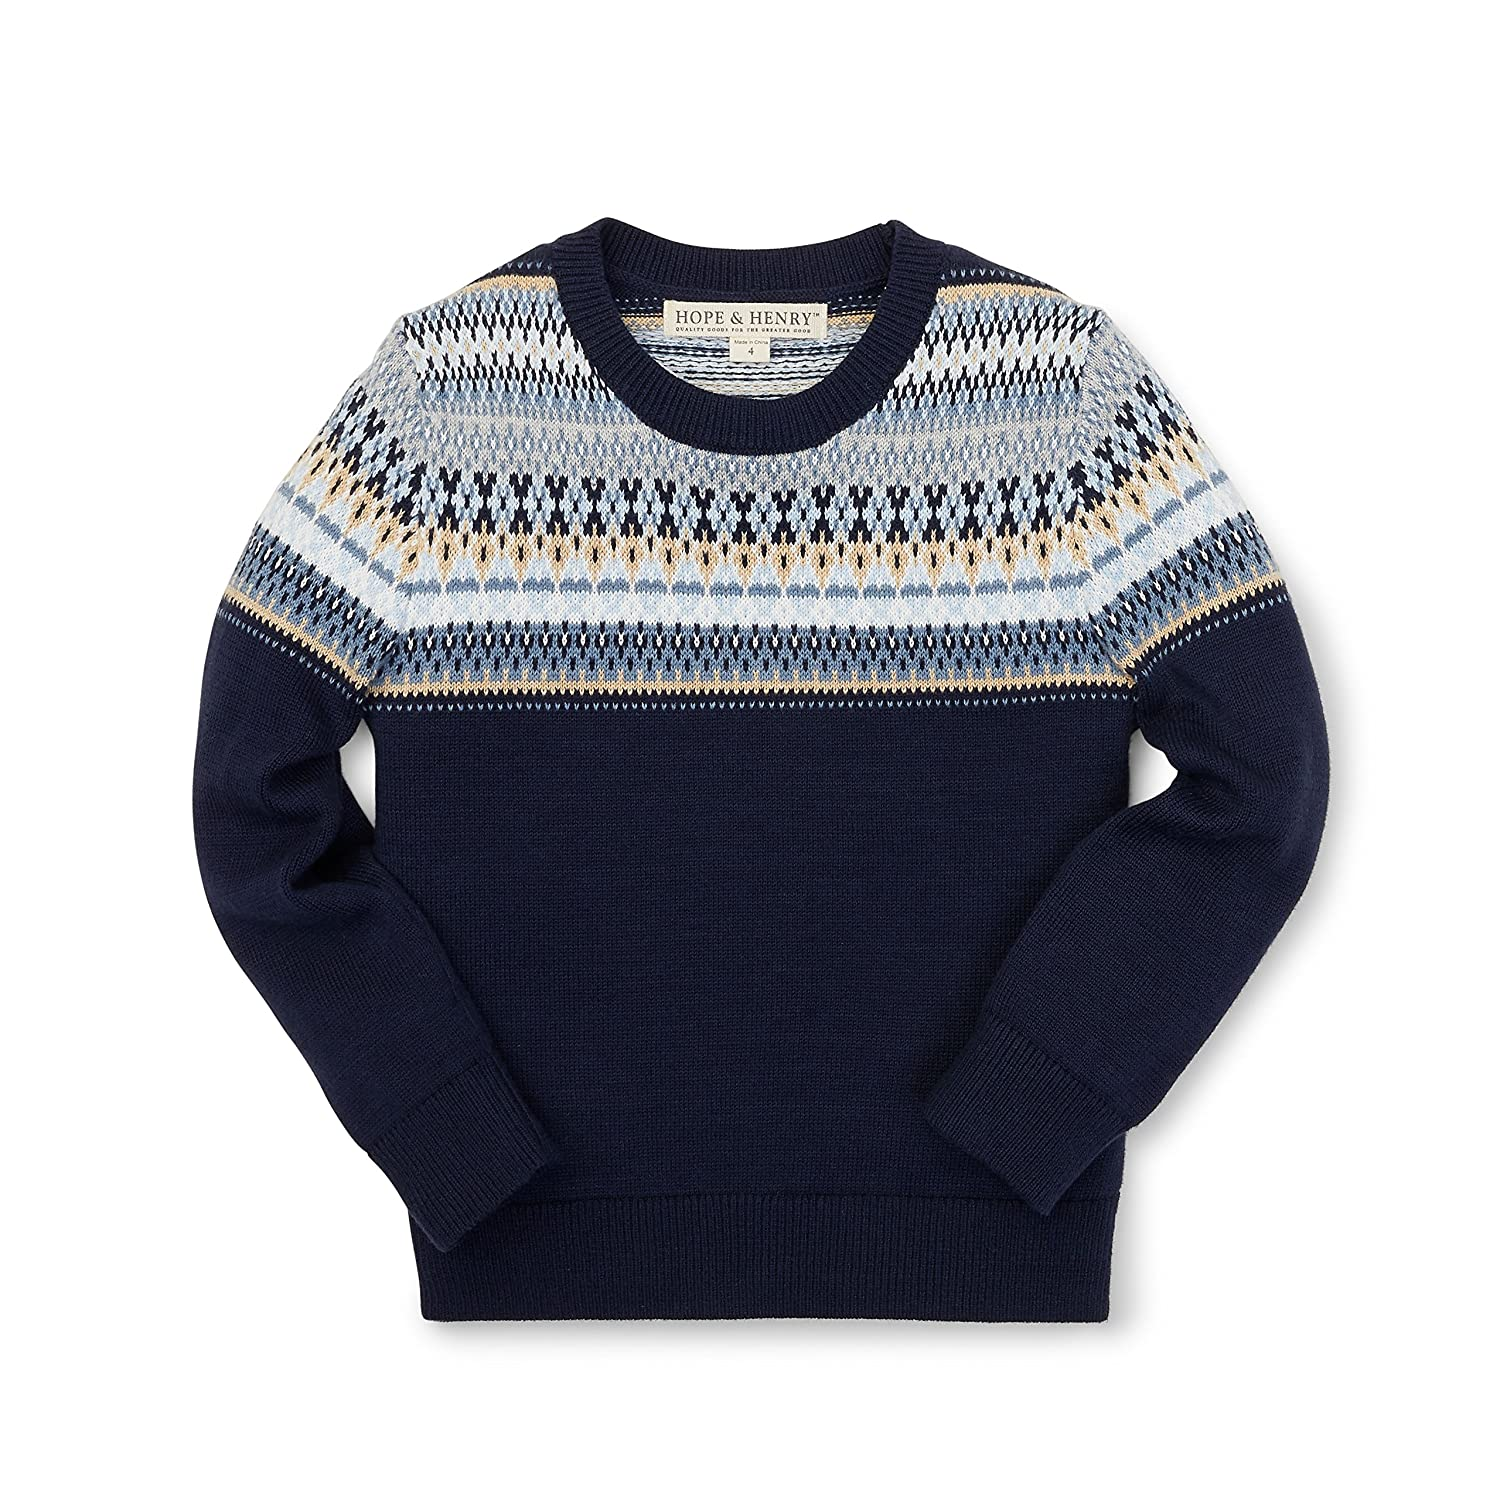 Hope & Henry Boys' Navy Fair Isle Sweater Made with Organic Cotton